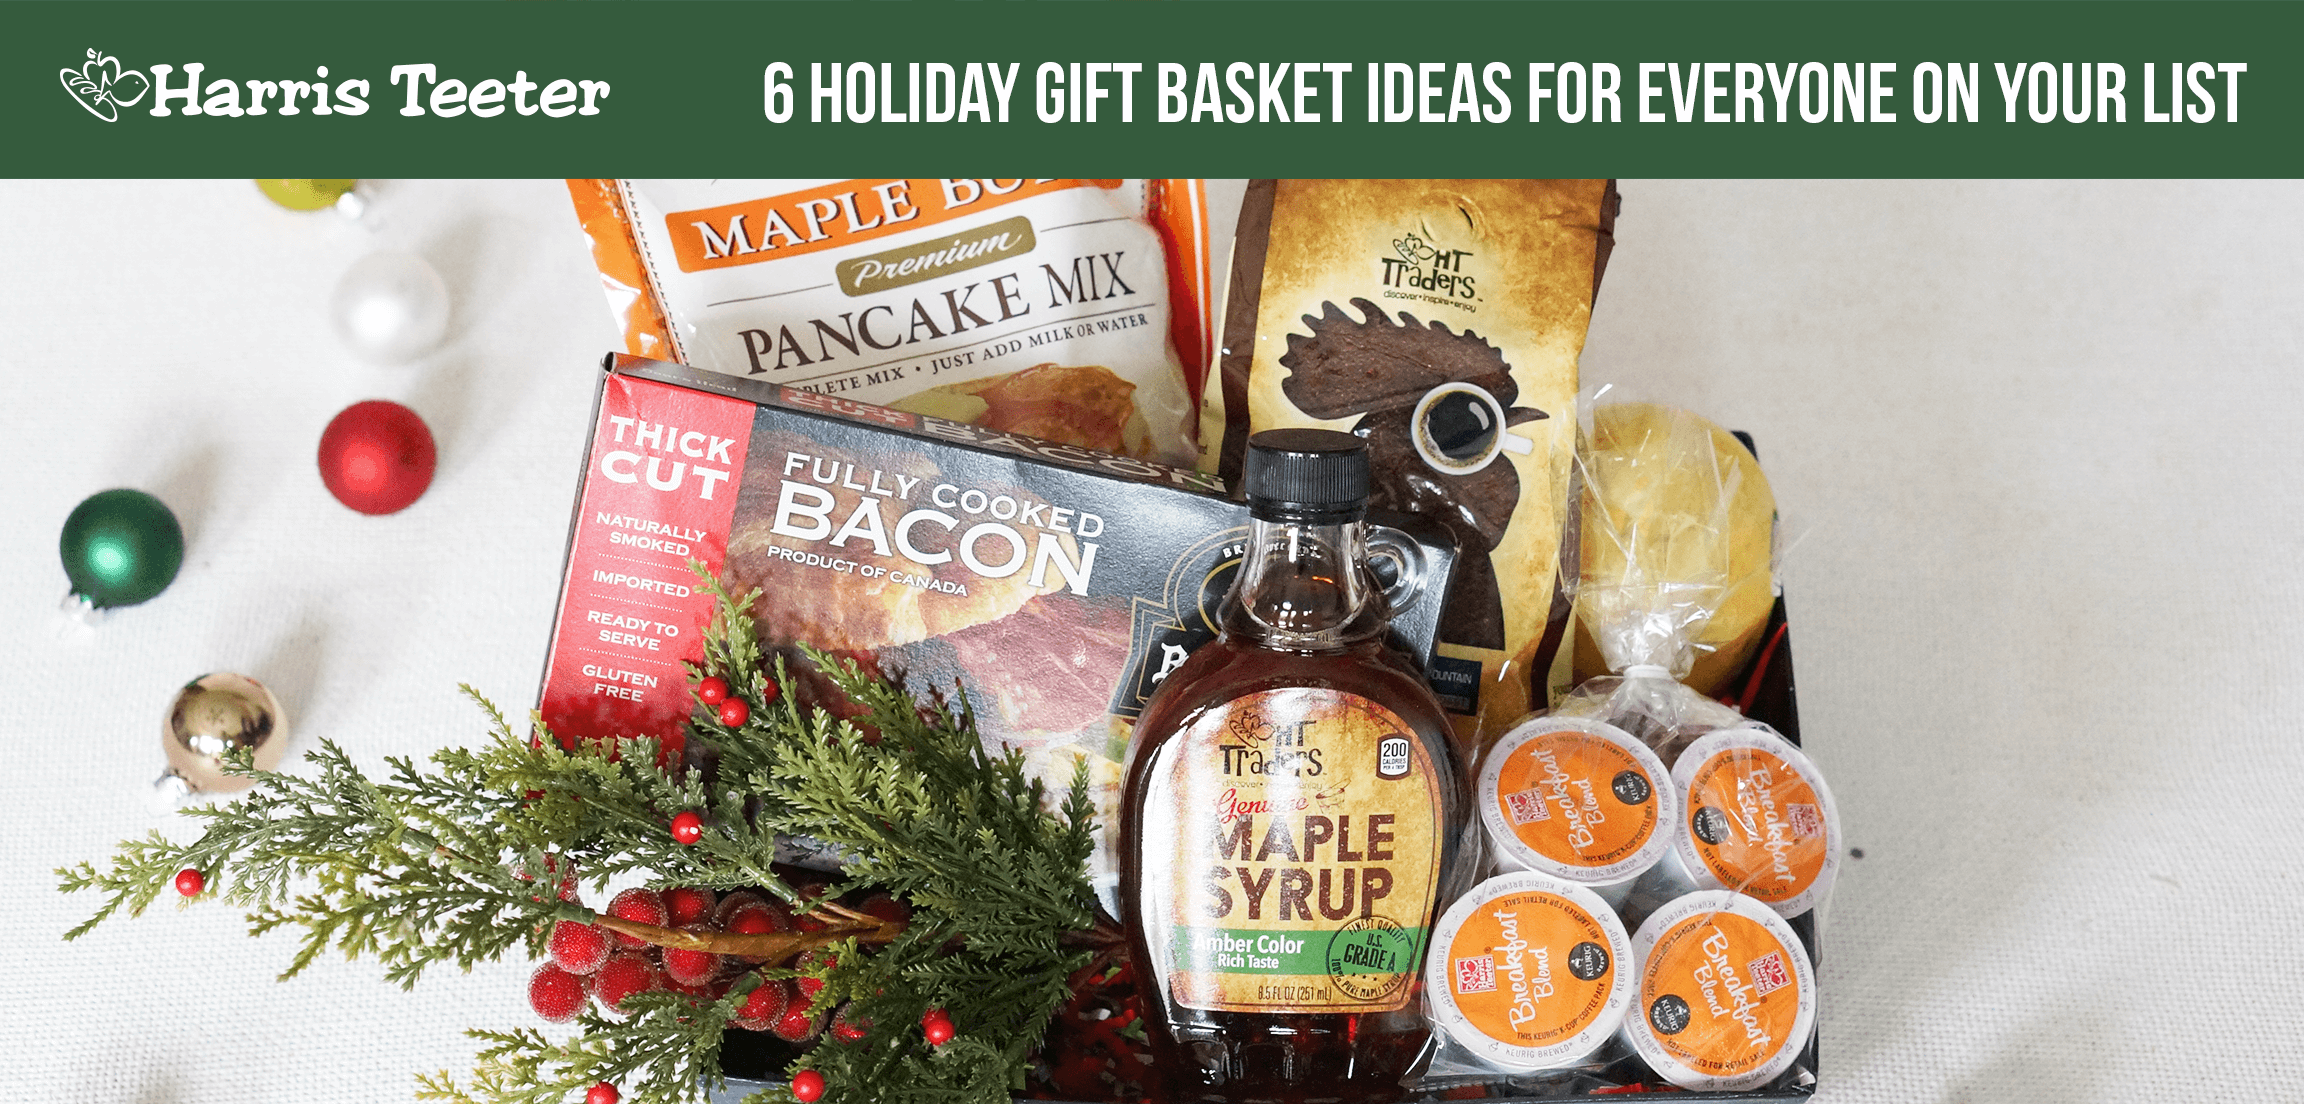 Holiday Gift Baskets for Everyone on Your List